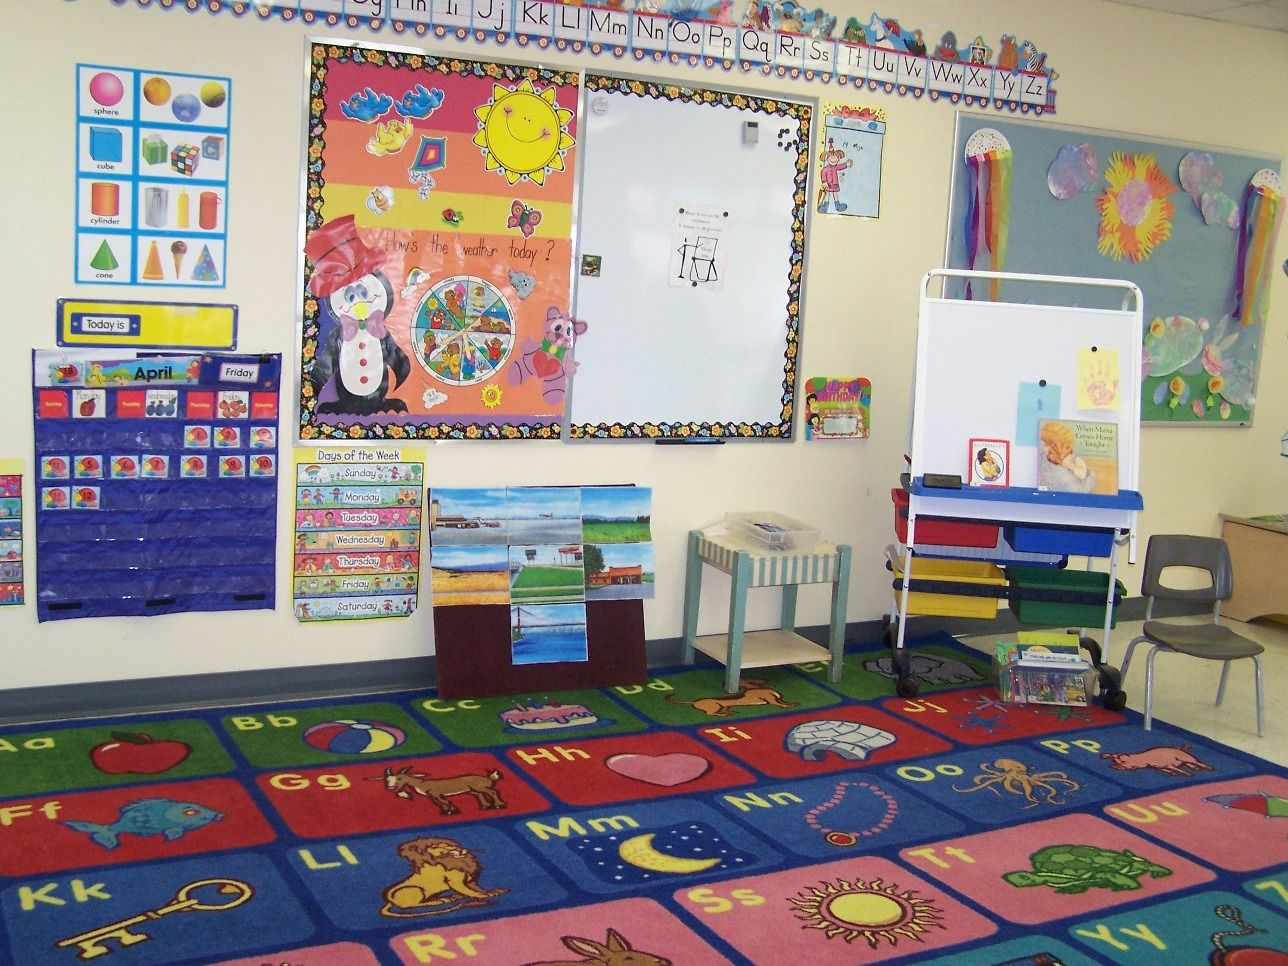 Toddler Classroom Decoration Ideas ~ My classroom will be full of learning numbers shapes